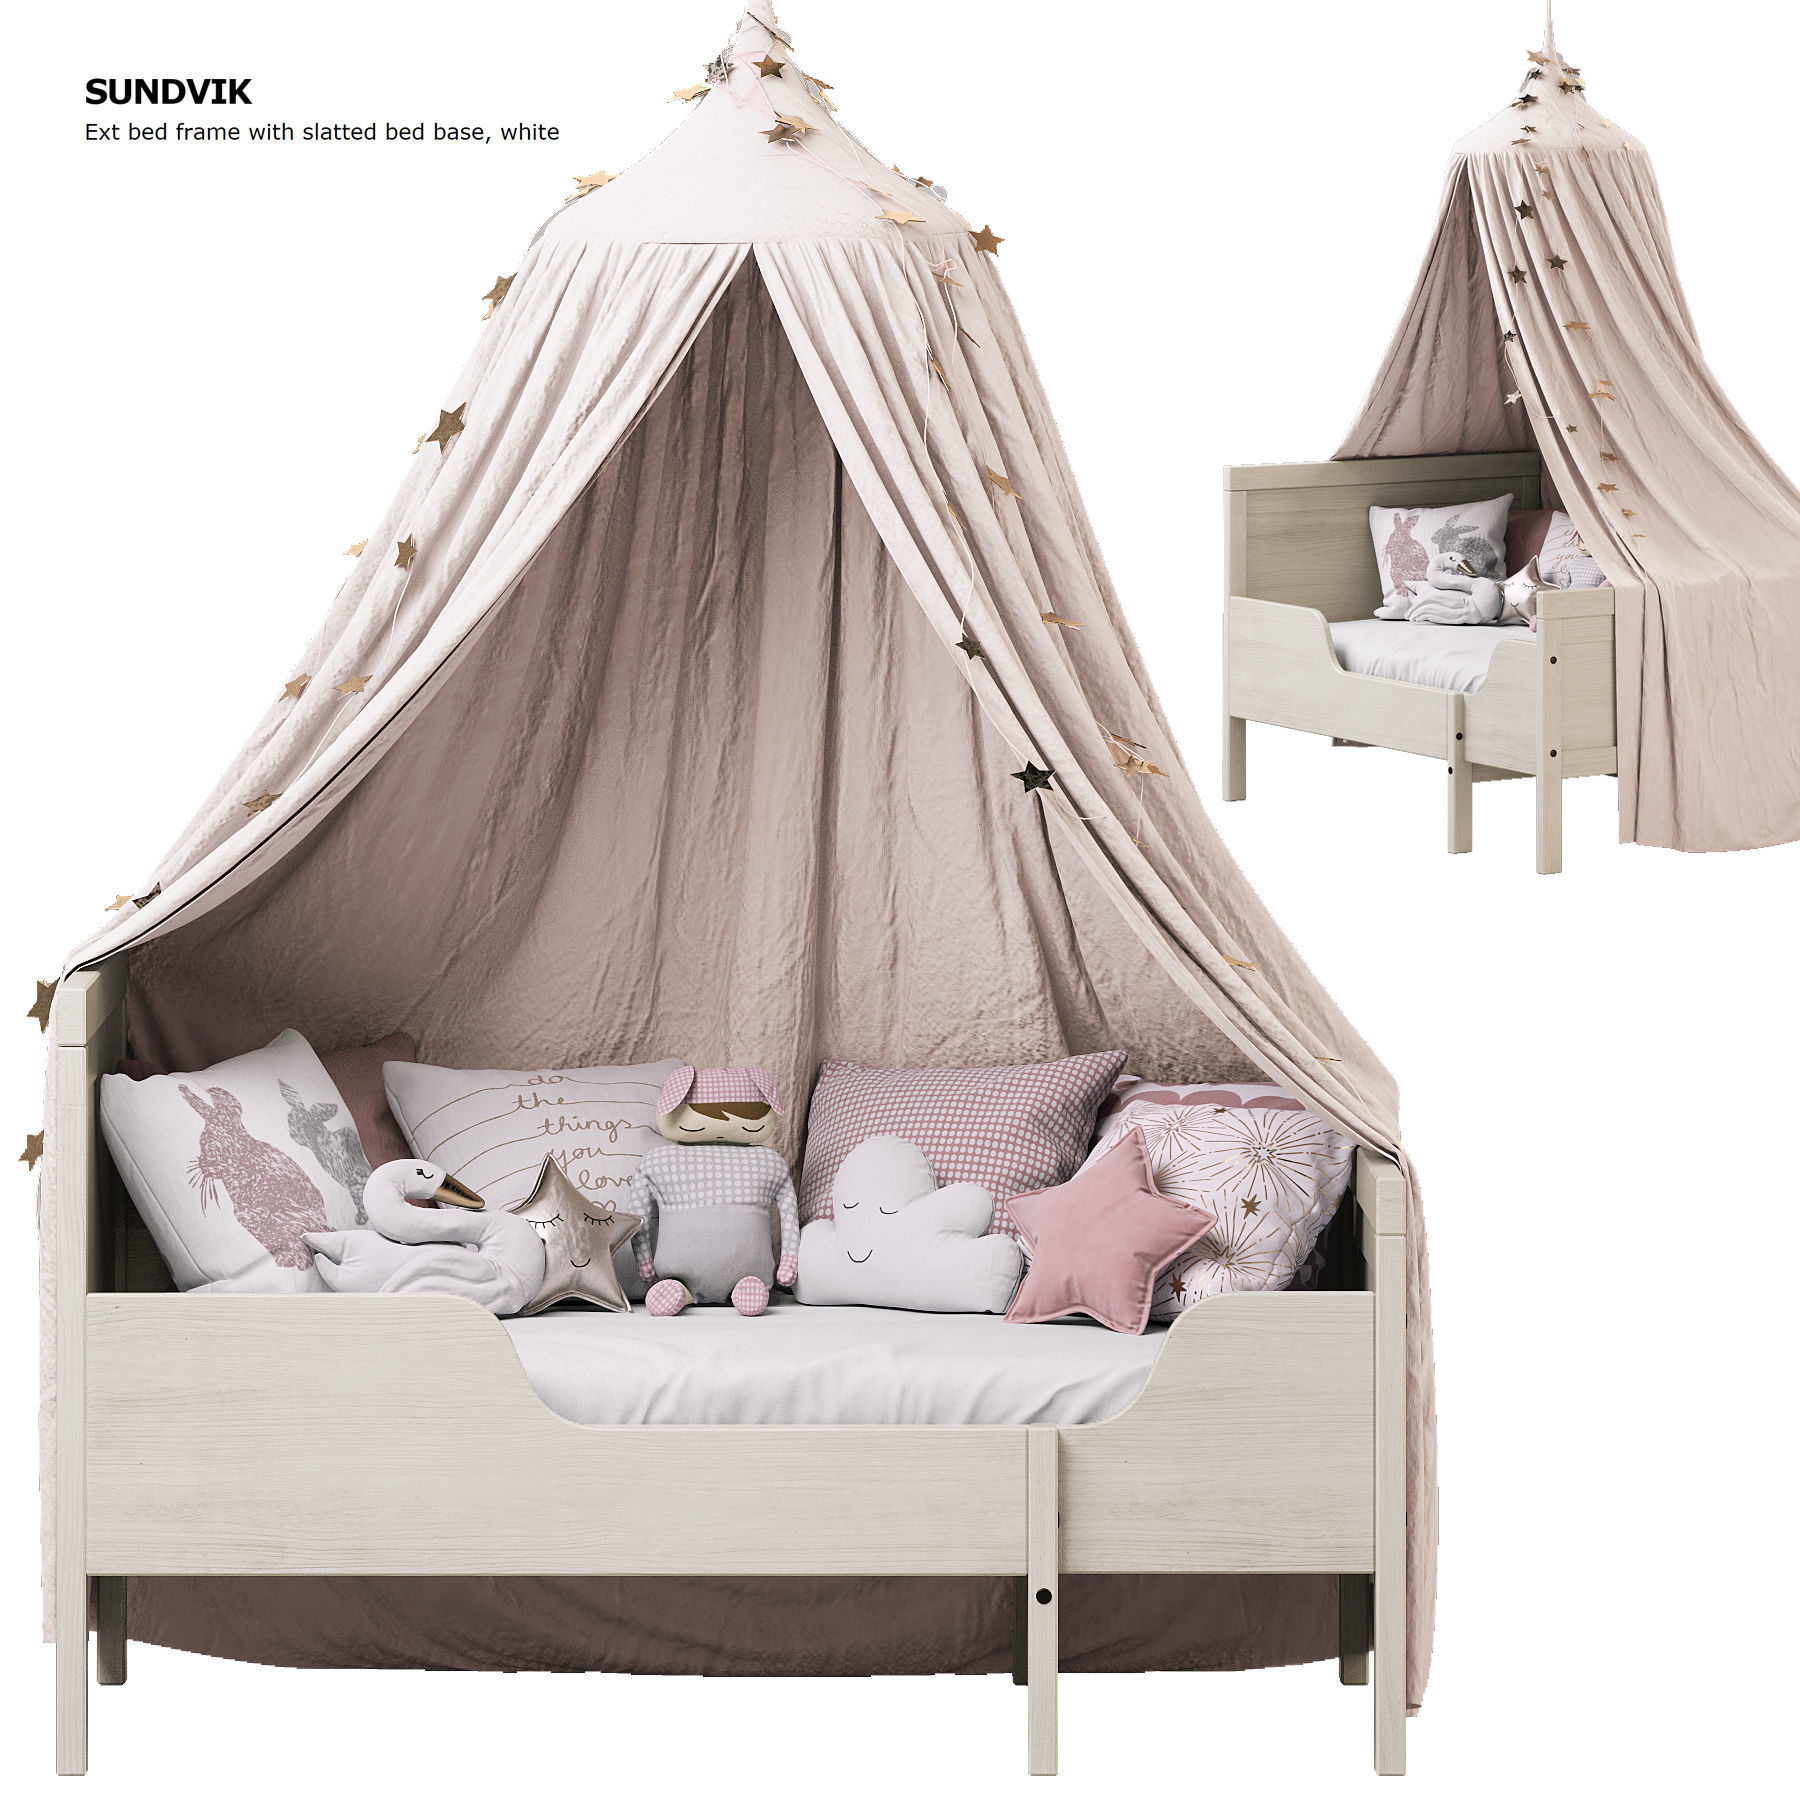 Children Bed Sundvik Ikea With Canopy 3d Model Cgtrader